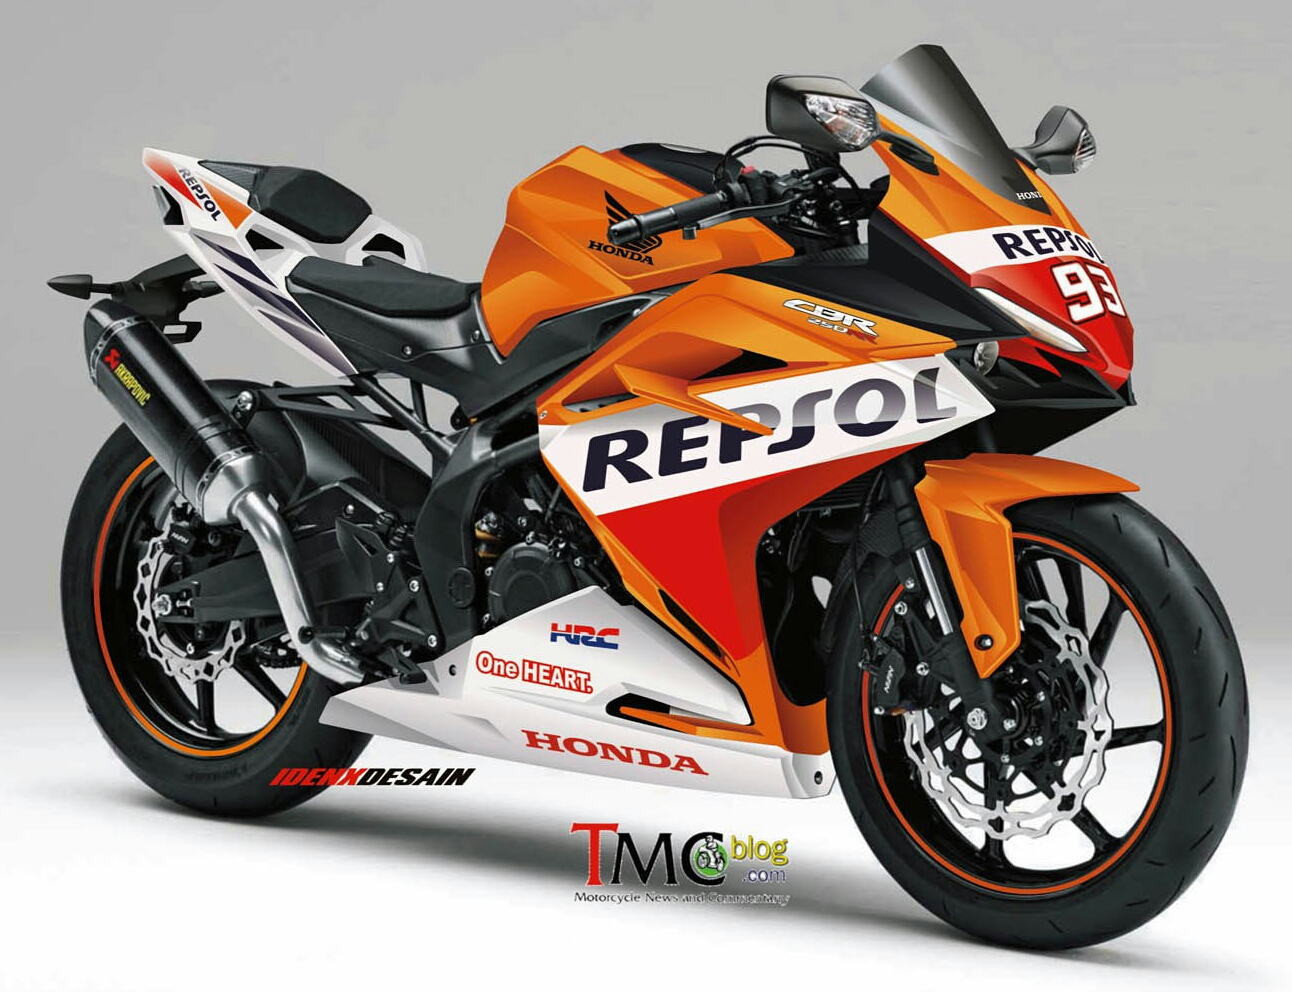 2016 / 2017 Honda CBR250RR Repsol SportBike Motorcycle | CBR350RR CBR300RR - Light Weight Super Sports Concept